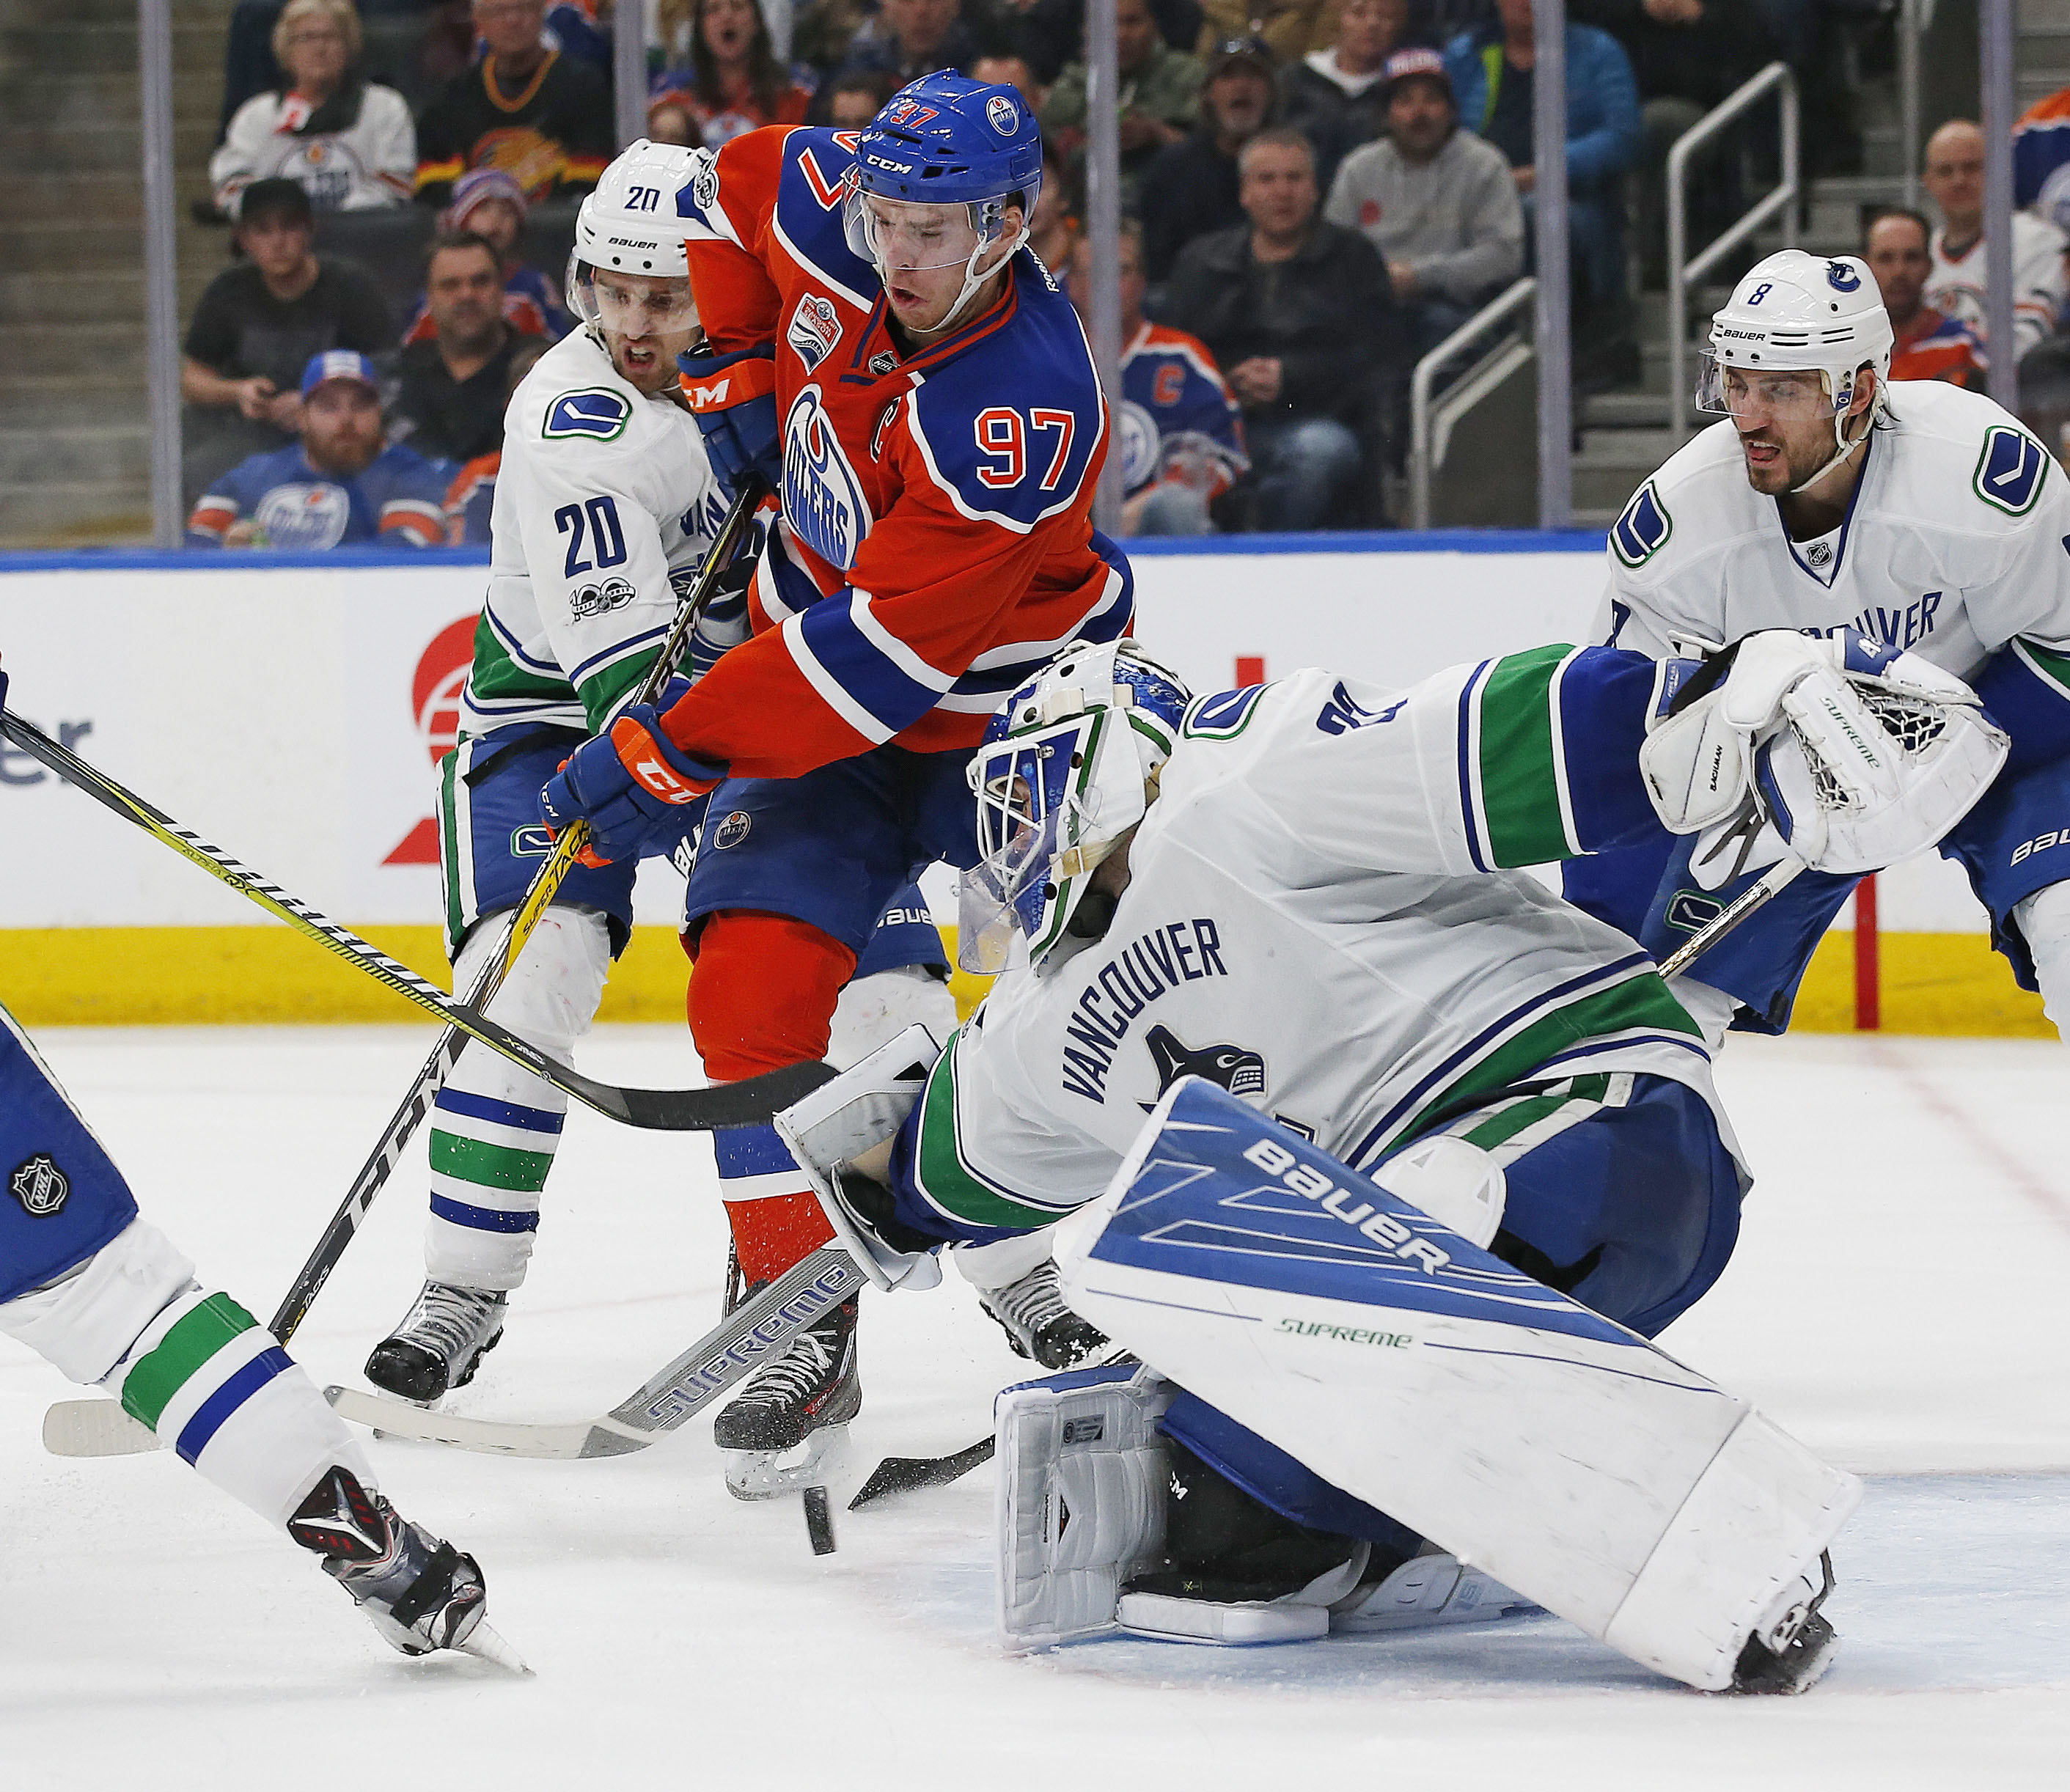 Edmonton Oilers Finish Strong With Victory Over Canucks